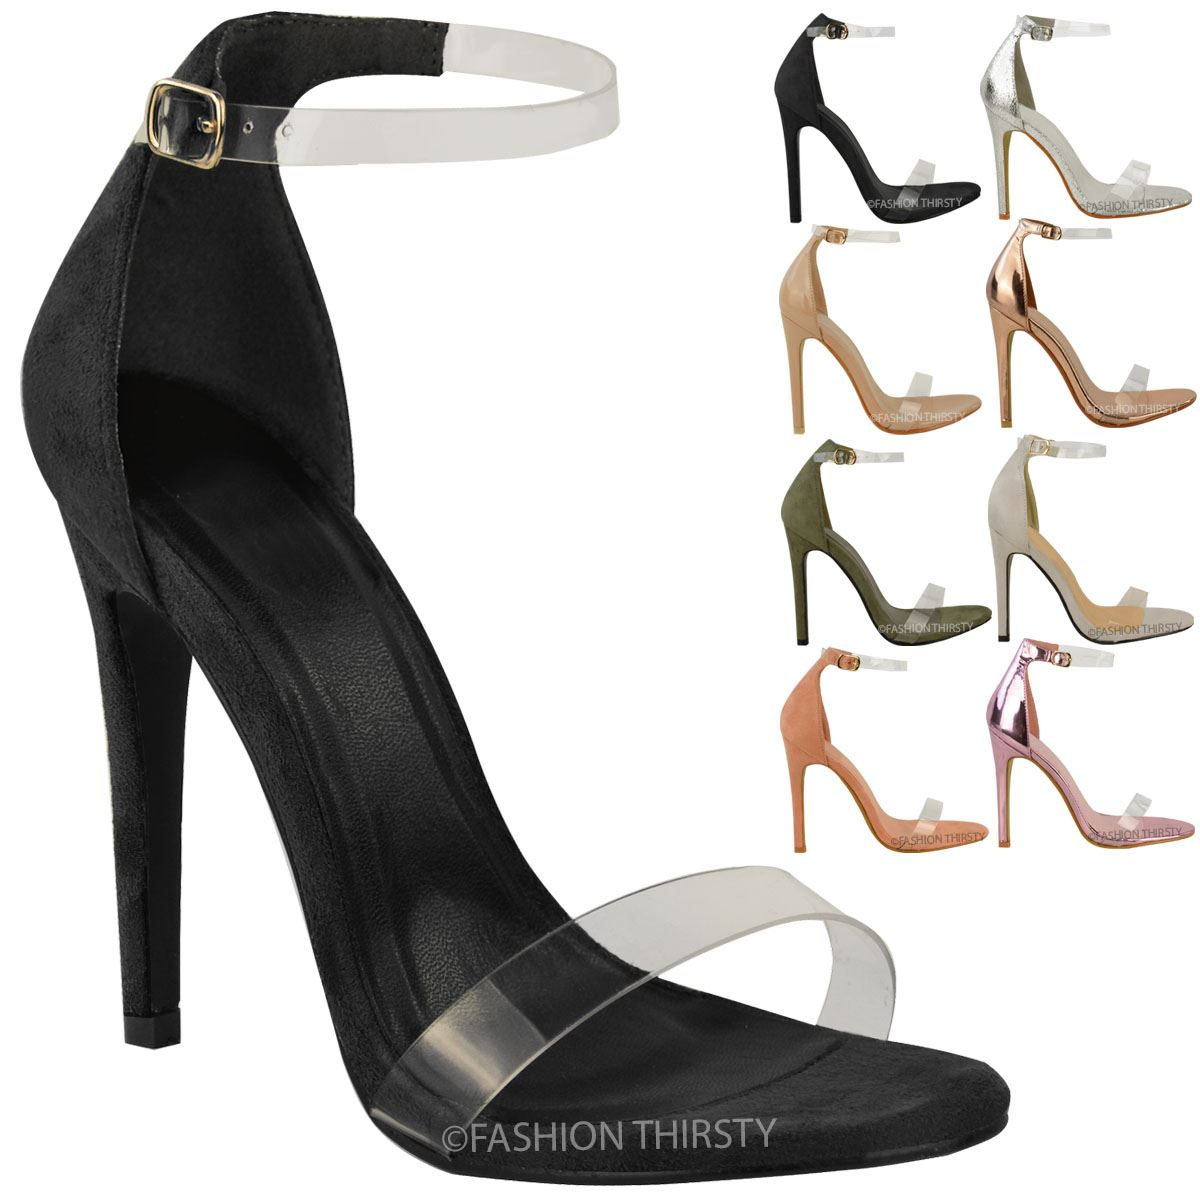 Fashion Thirsty Womens High Heel Peep Toe Barely There Ankle Strappy Buckle Sandals Size  2HRQUF7QD